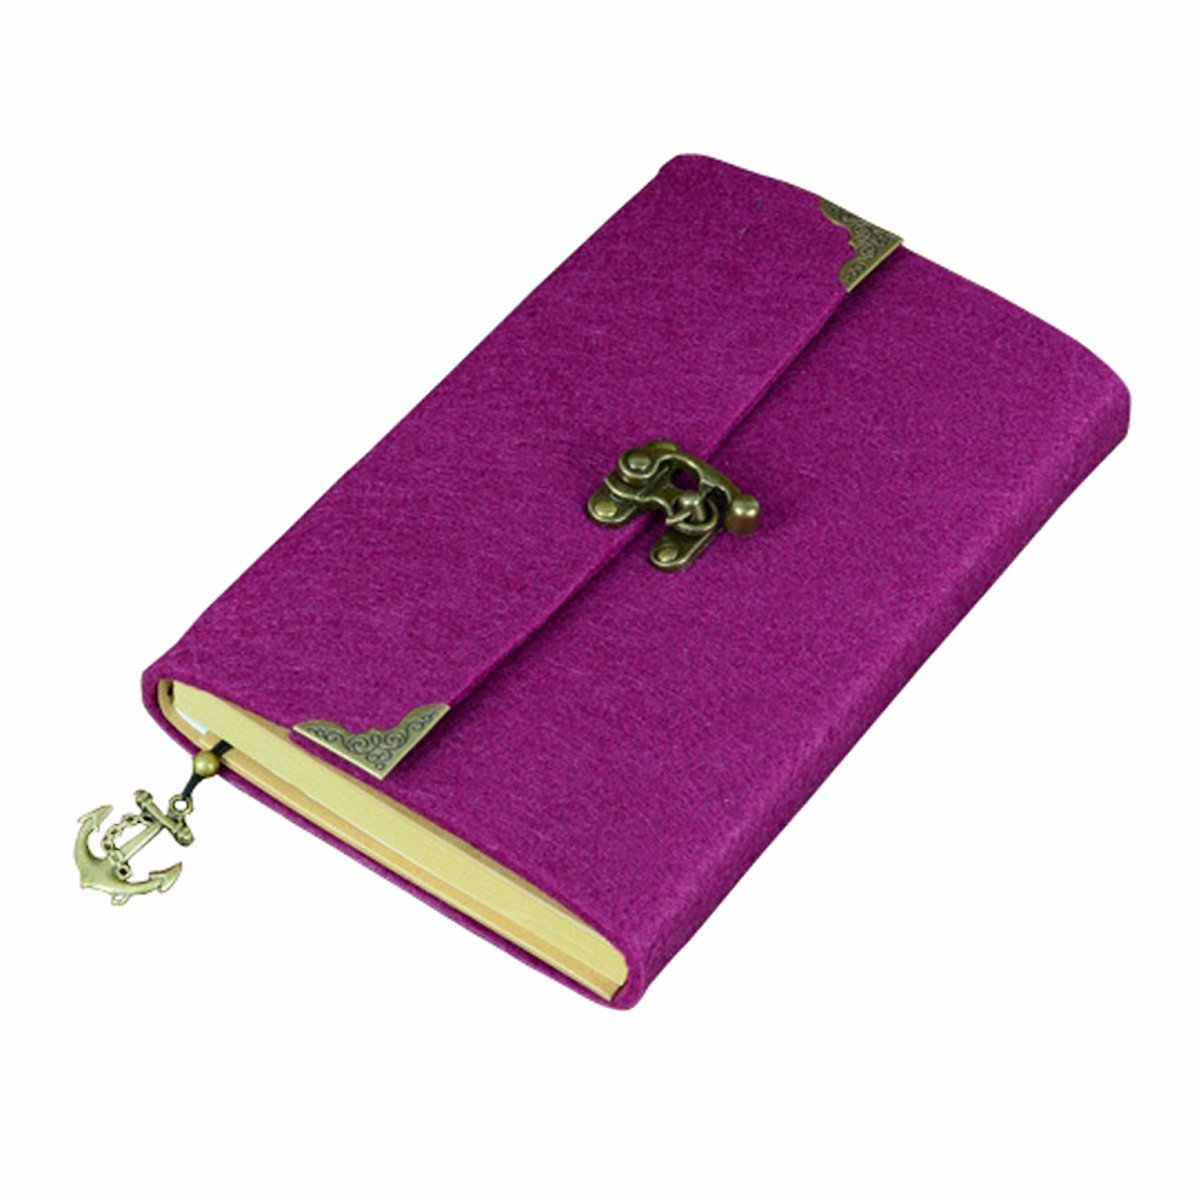 SAYEEC Retro Slim Felt Cover Hardcover Notebook With Bronze Lock - Lined Diary Travel Writing Journal Drawing Sketchbook Purple